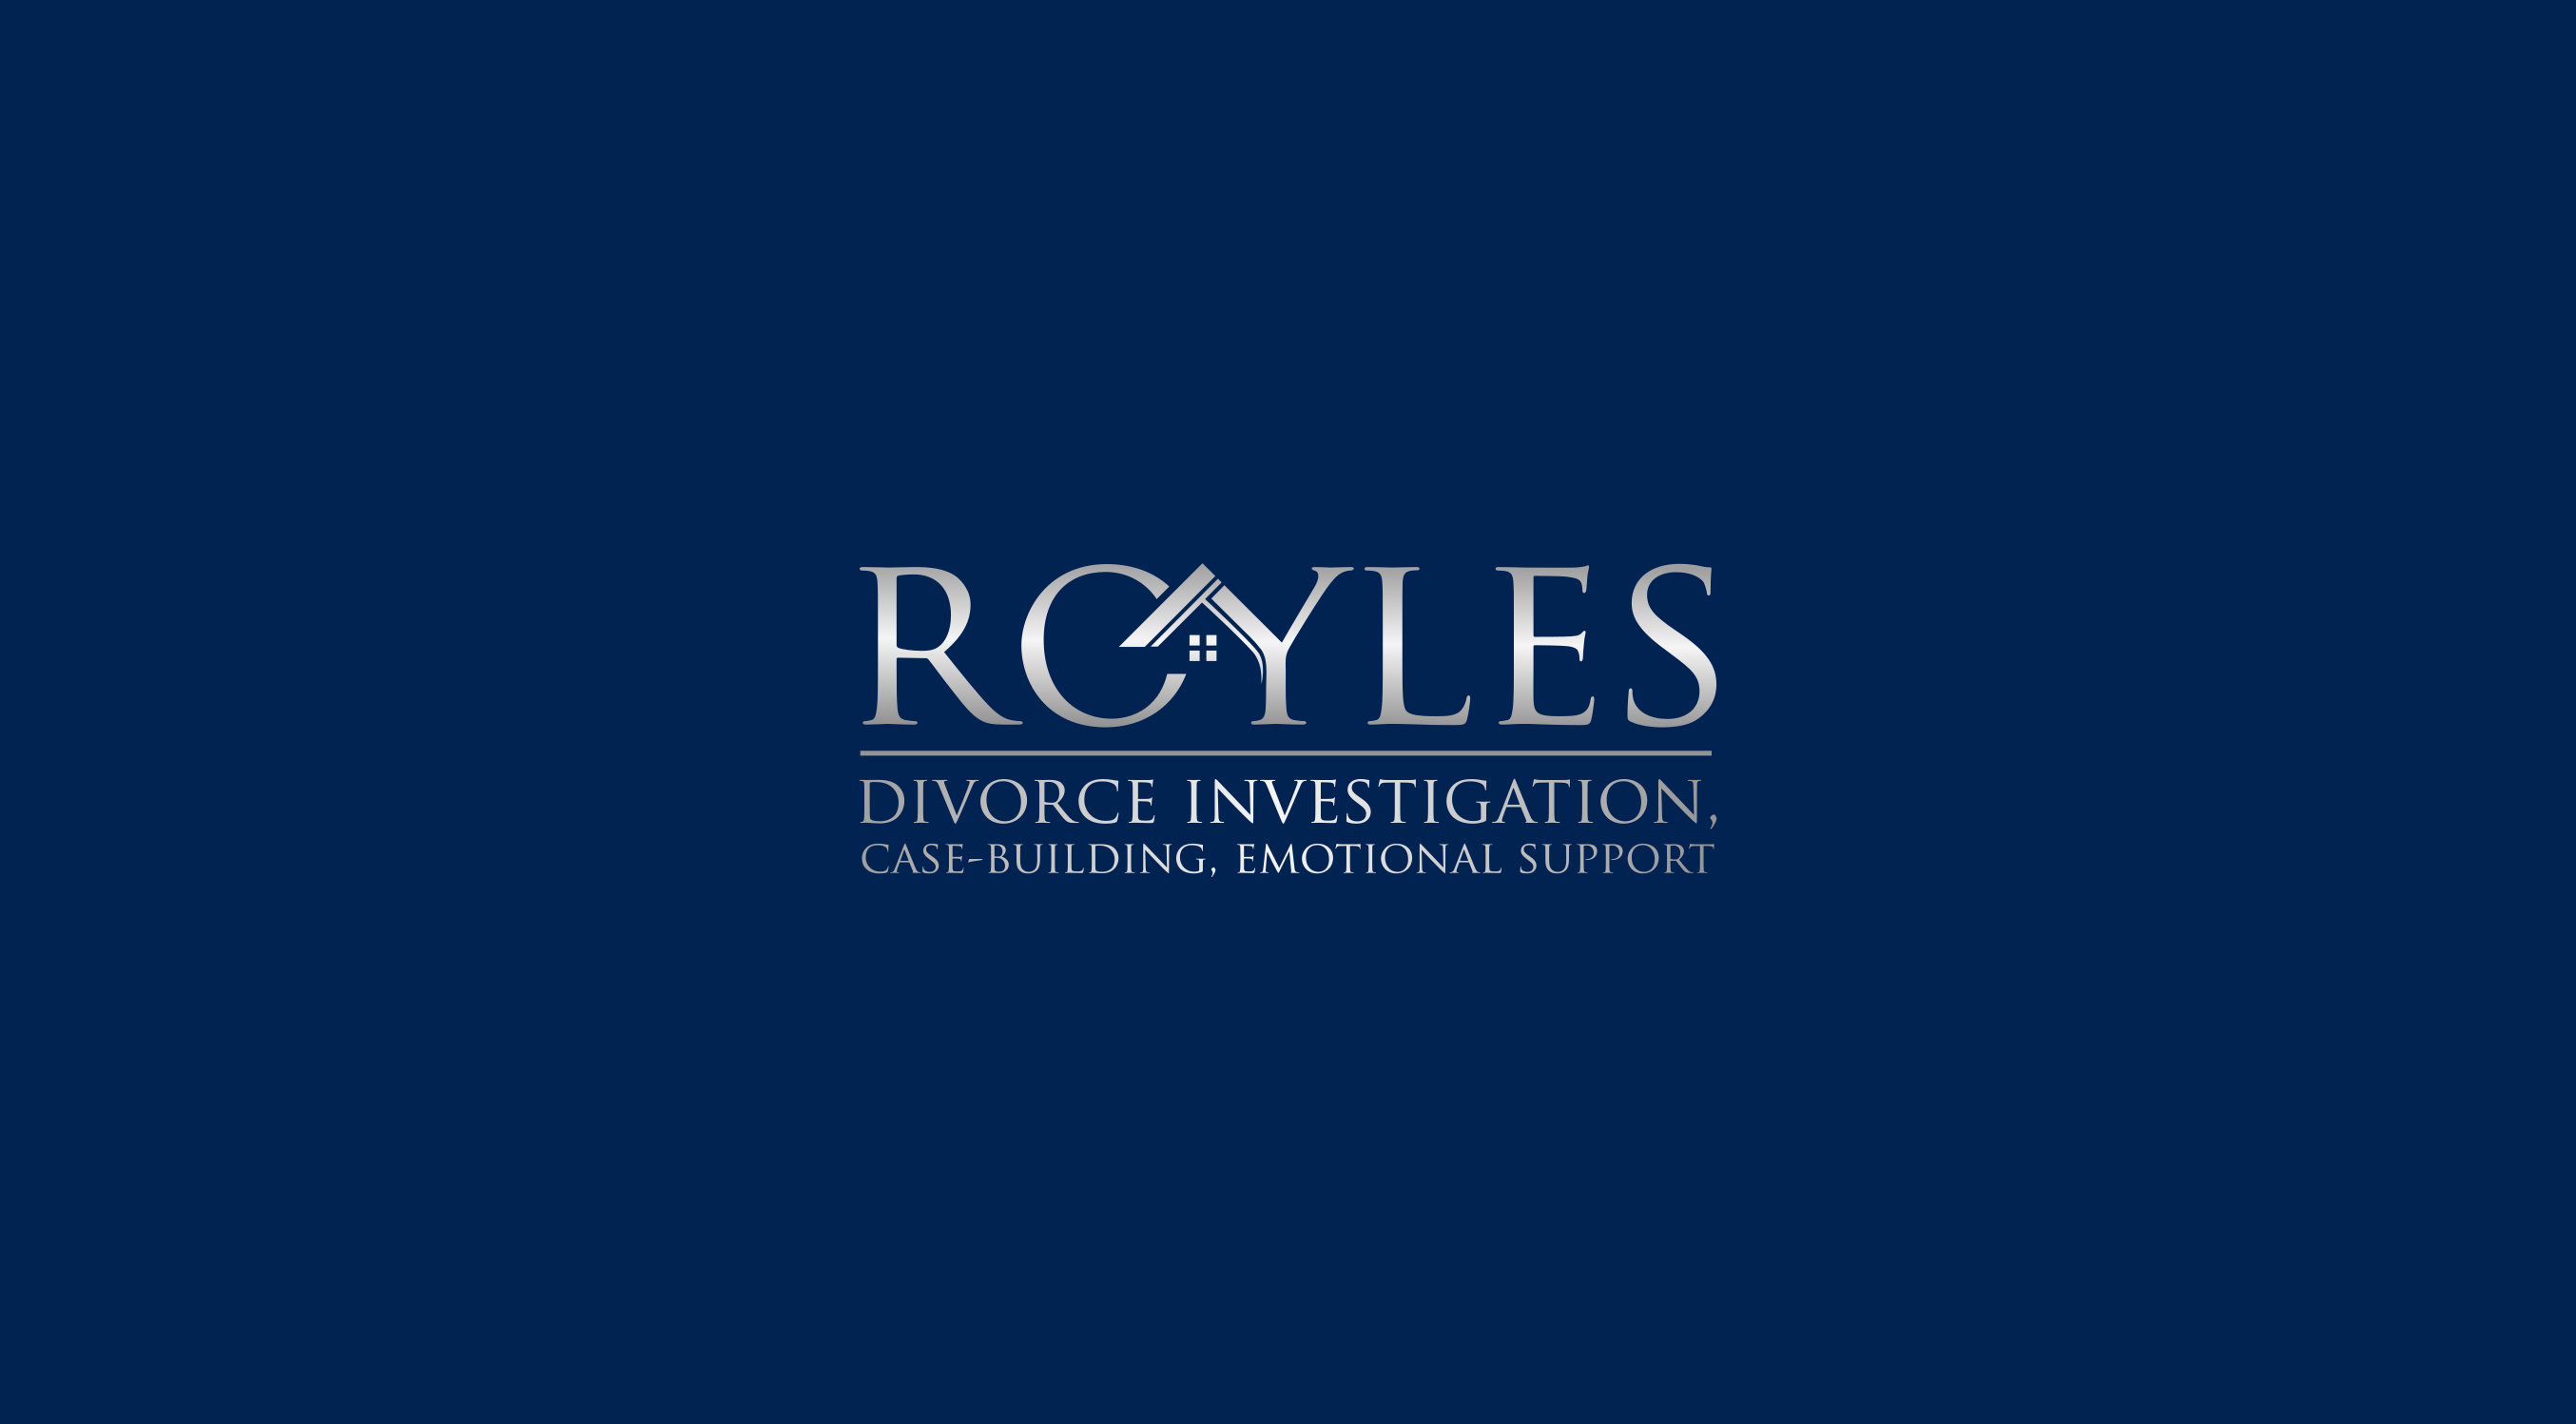 ROYLES: Investigation, Case-Building, Emotional Support